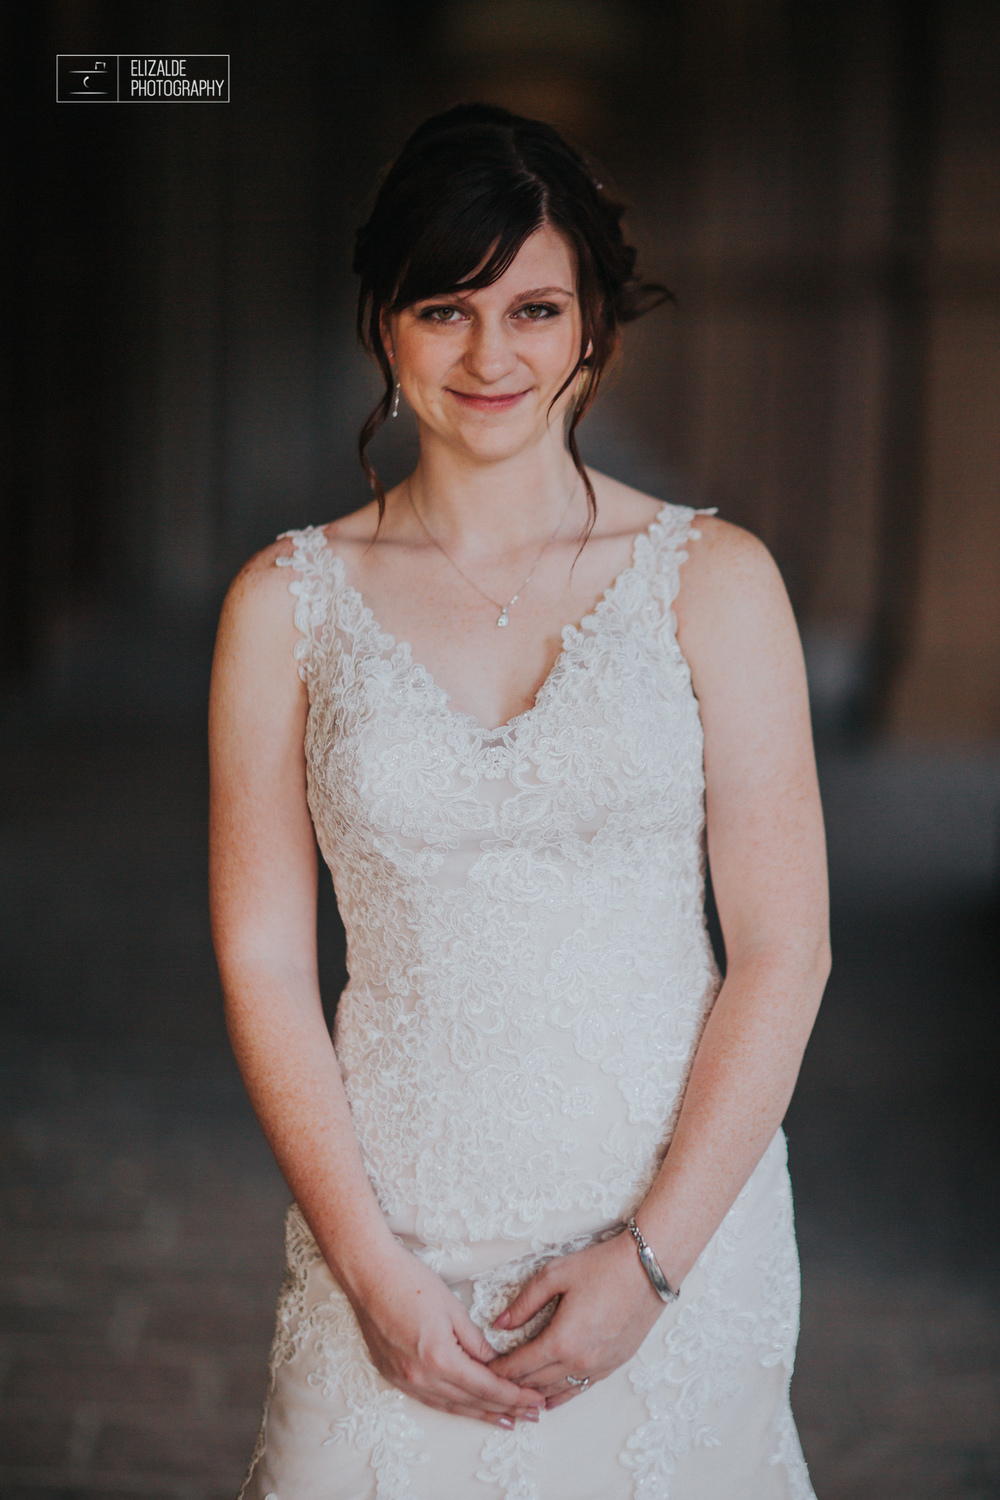 Kelly_Bridals_Omni_DFW_wedding_blog-1.jpg